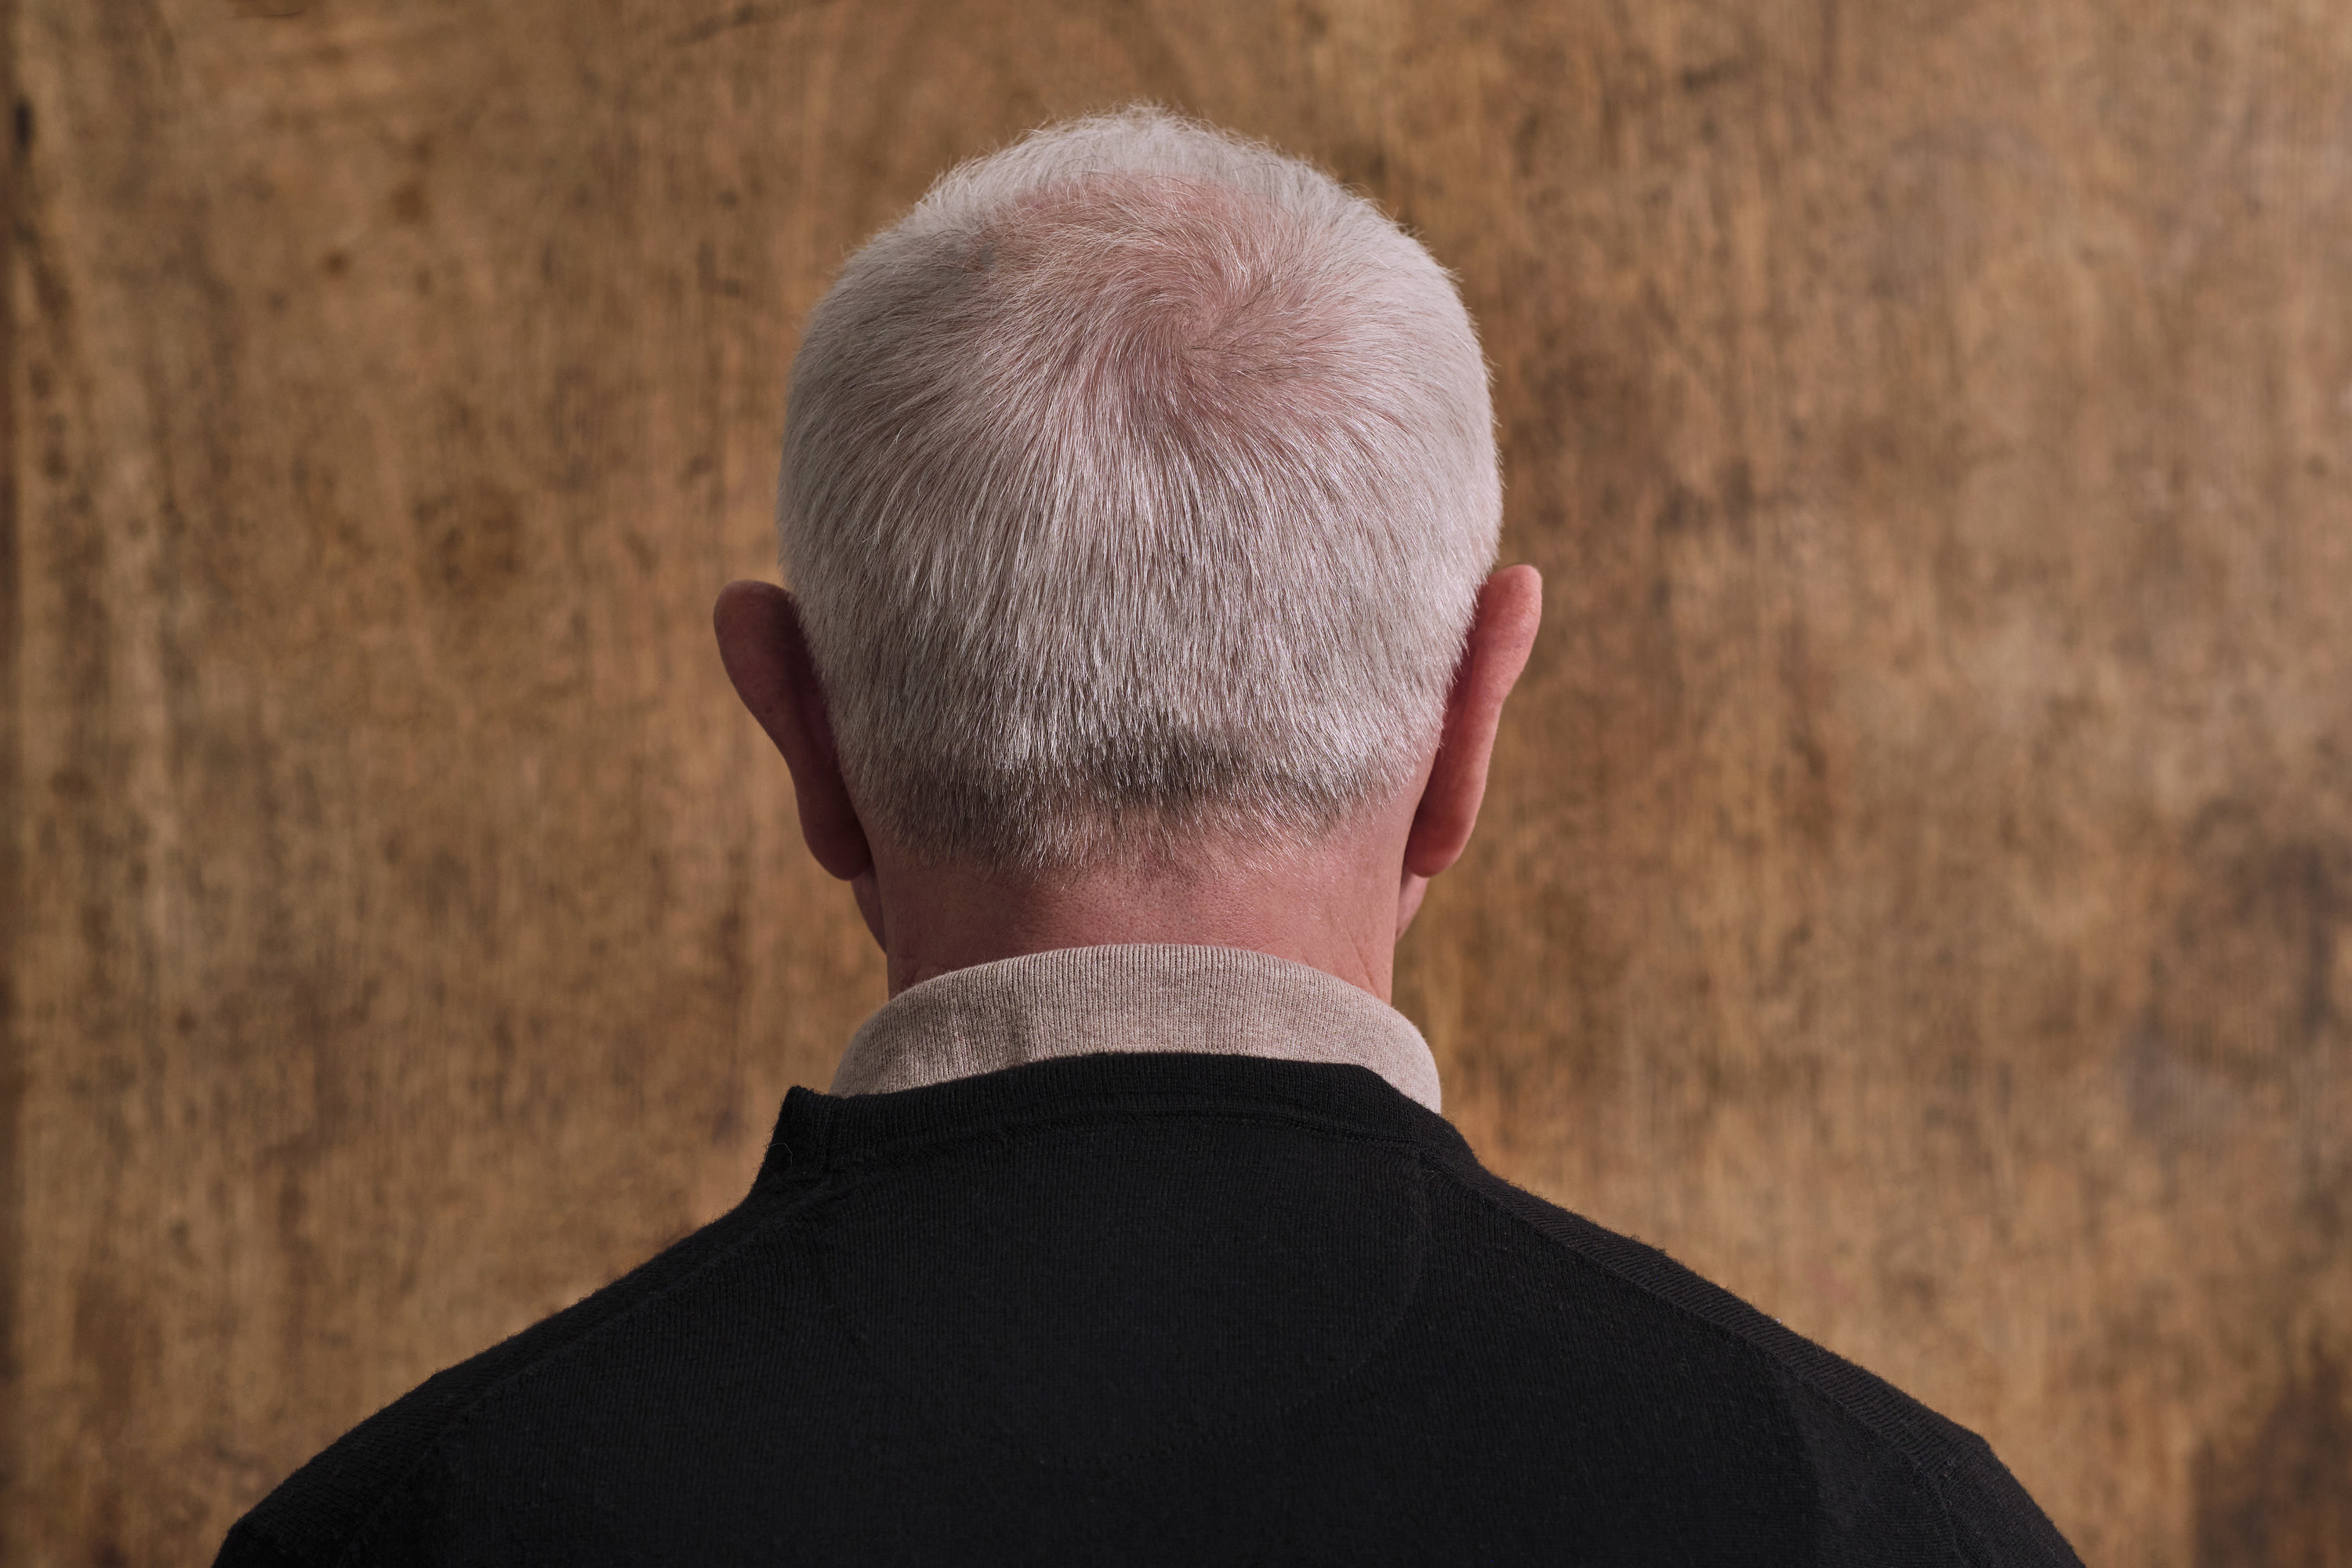 The back of a man's head